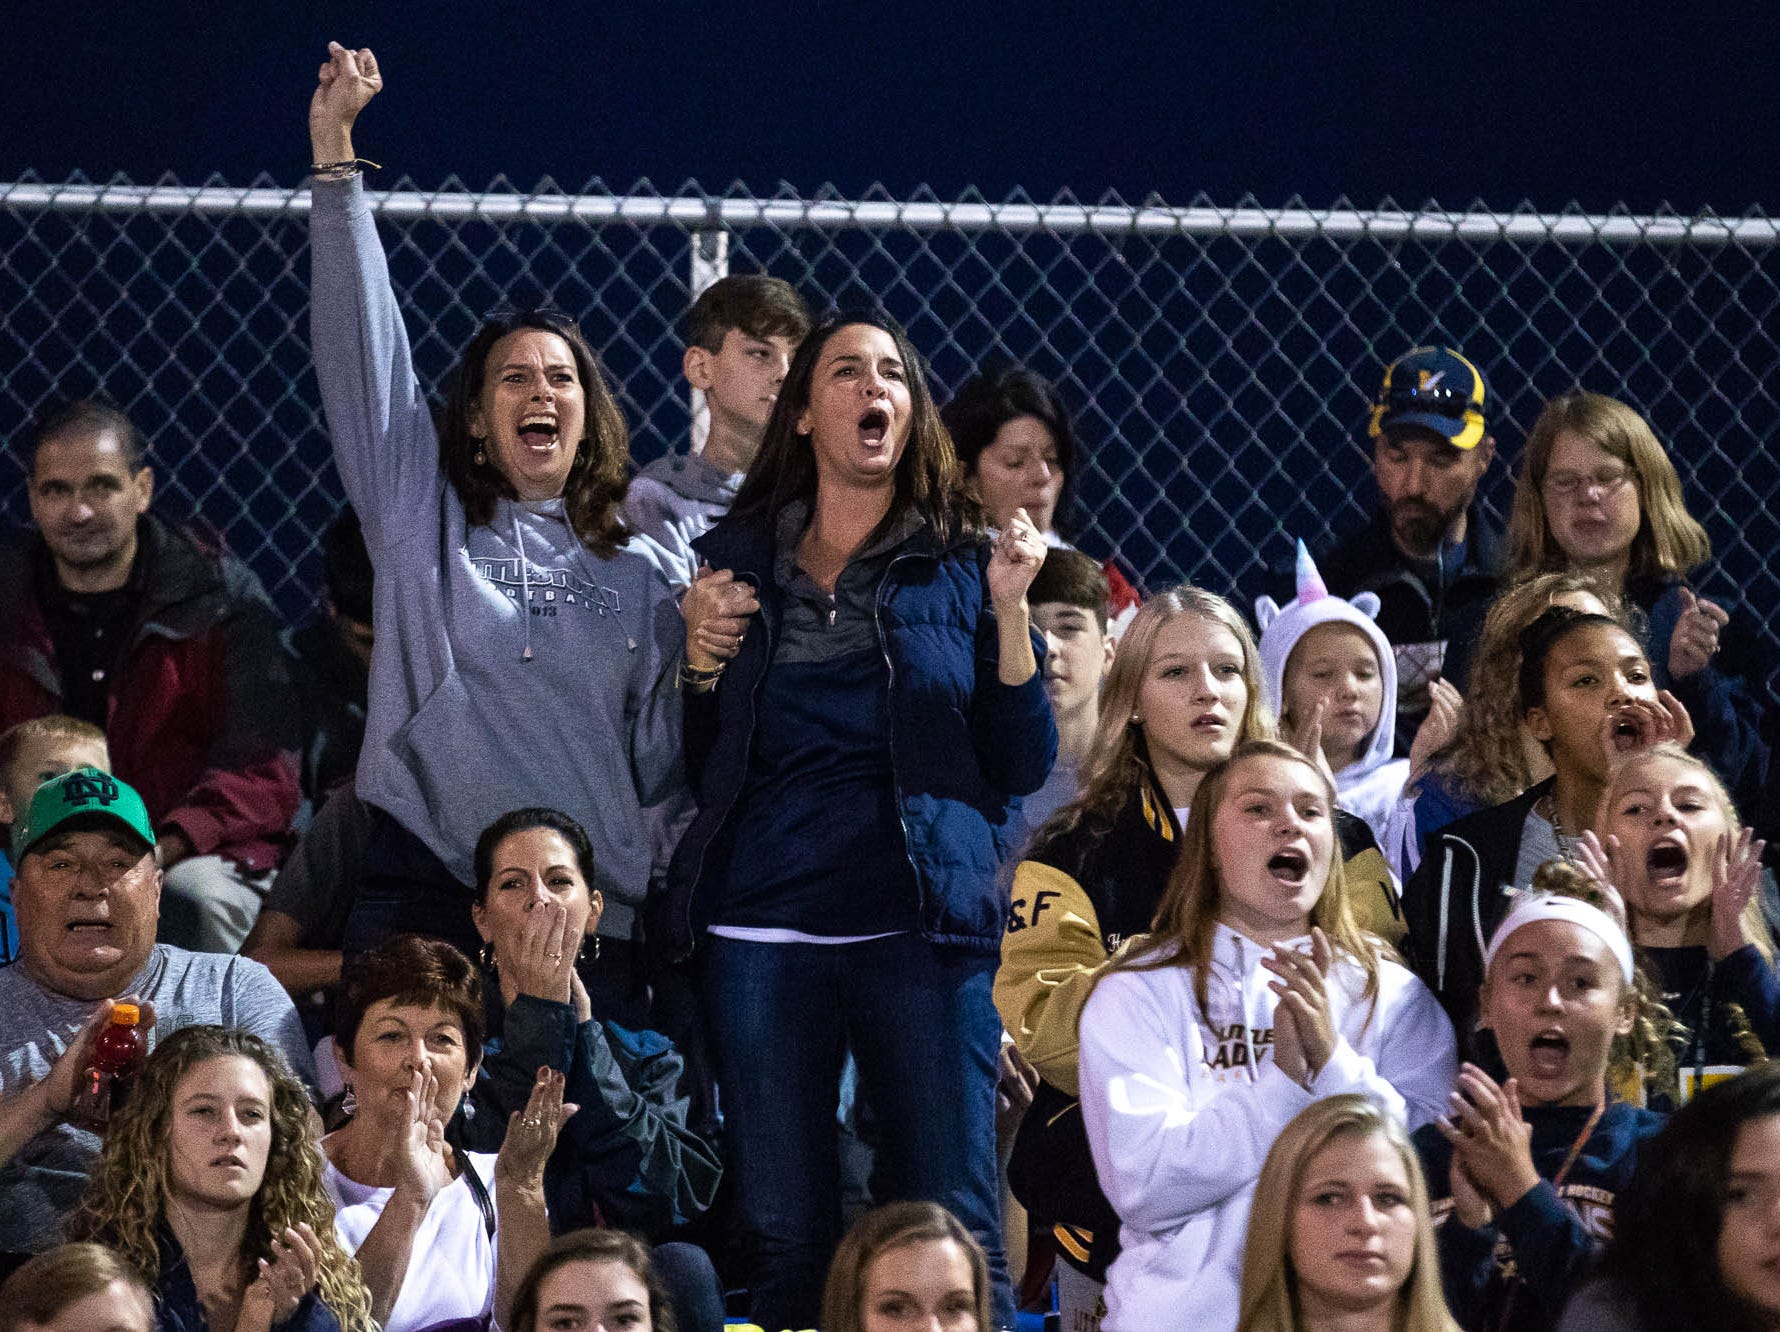 Littlestown fans cheer during a football game between Hanover and Littlestown, Friday, Oct. 5, 2018, at the Sheppard-Meyers field in Hanover.